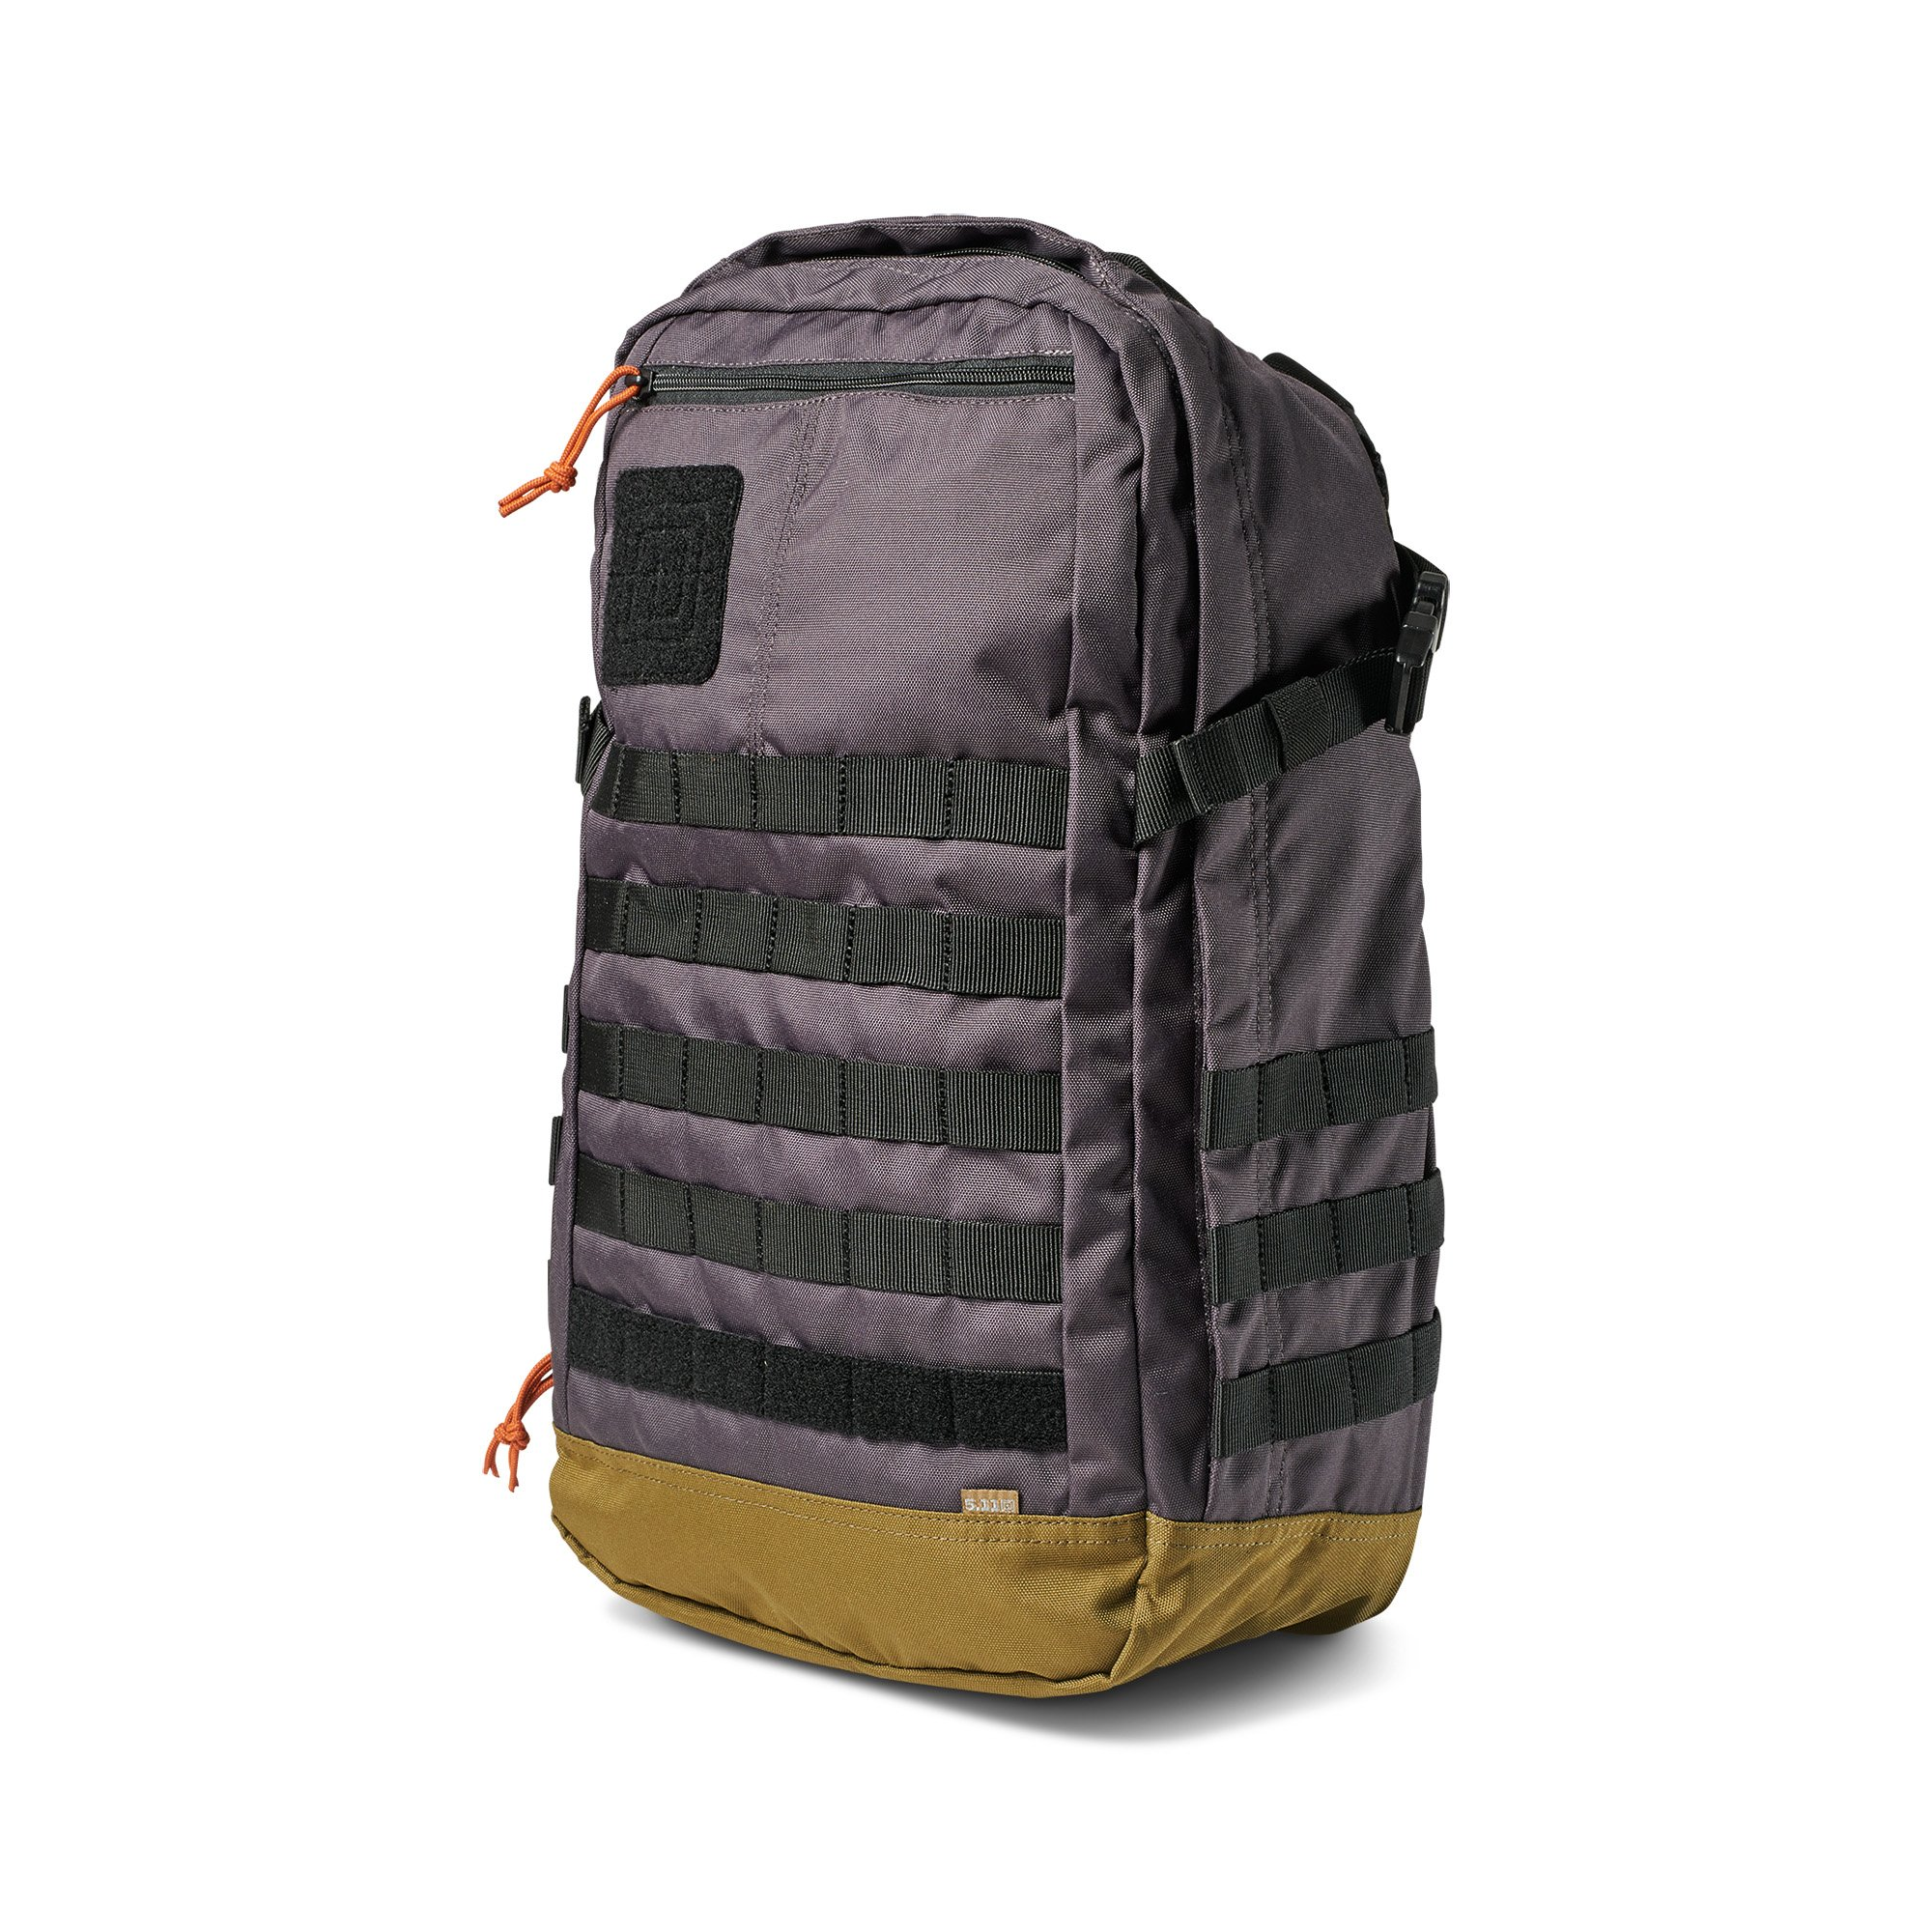 5.11 Rapid Origin Tactical Backpack with Laptop Sleeve, Hydration Pocket, MOLLE, Style 56355, Stokehold